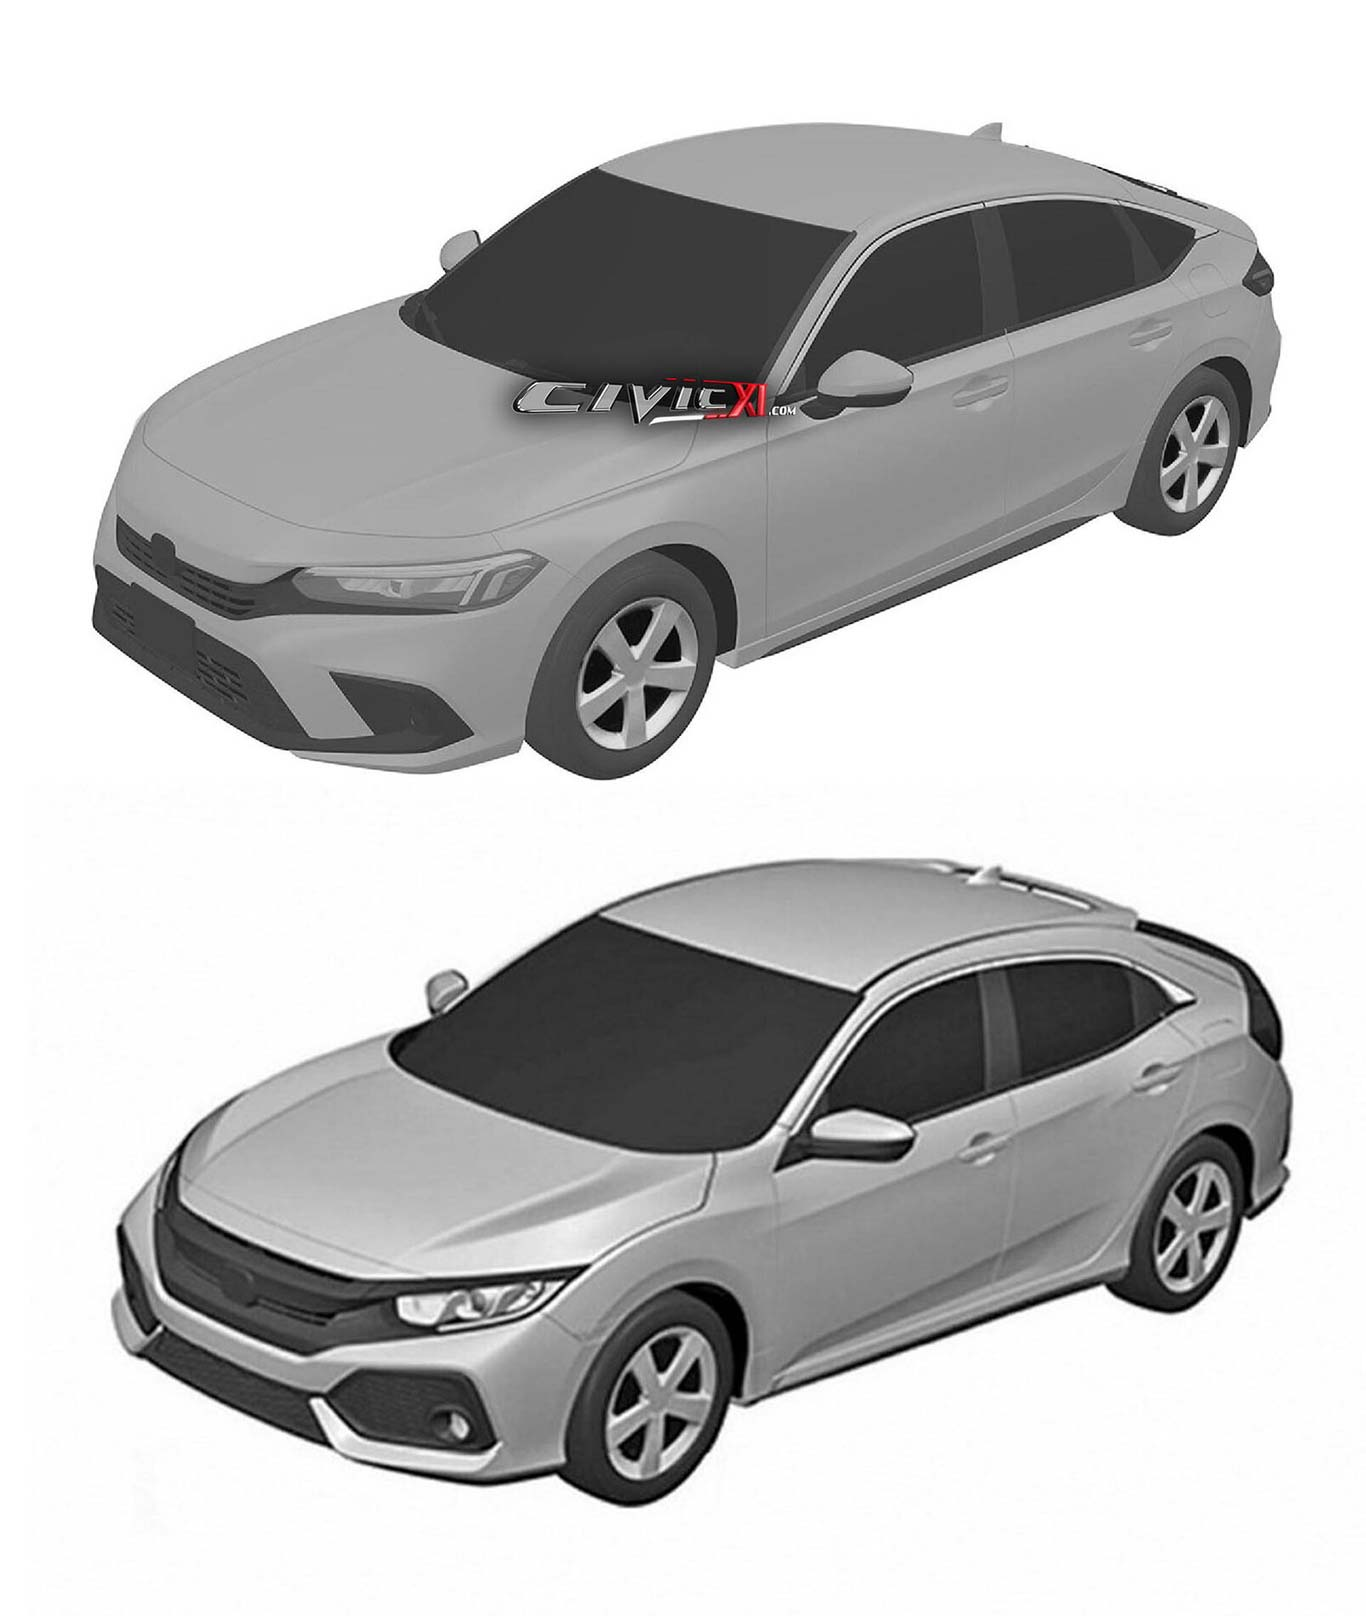 Honda Civic X vs XI